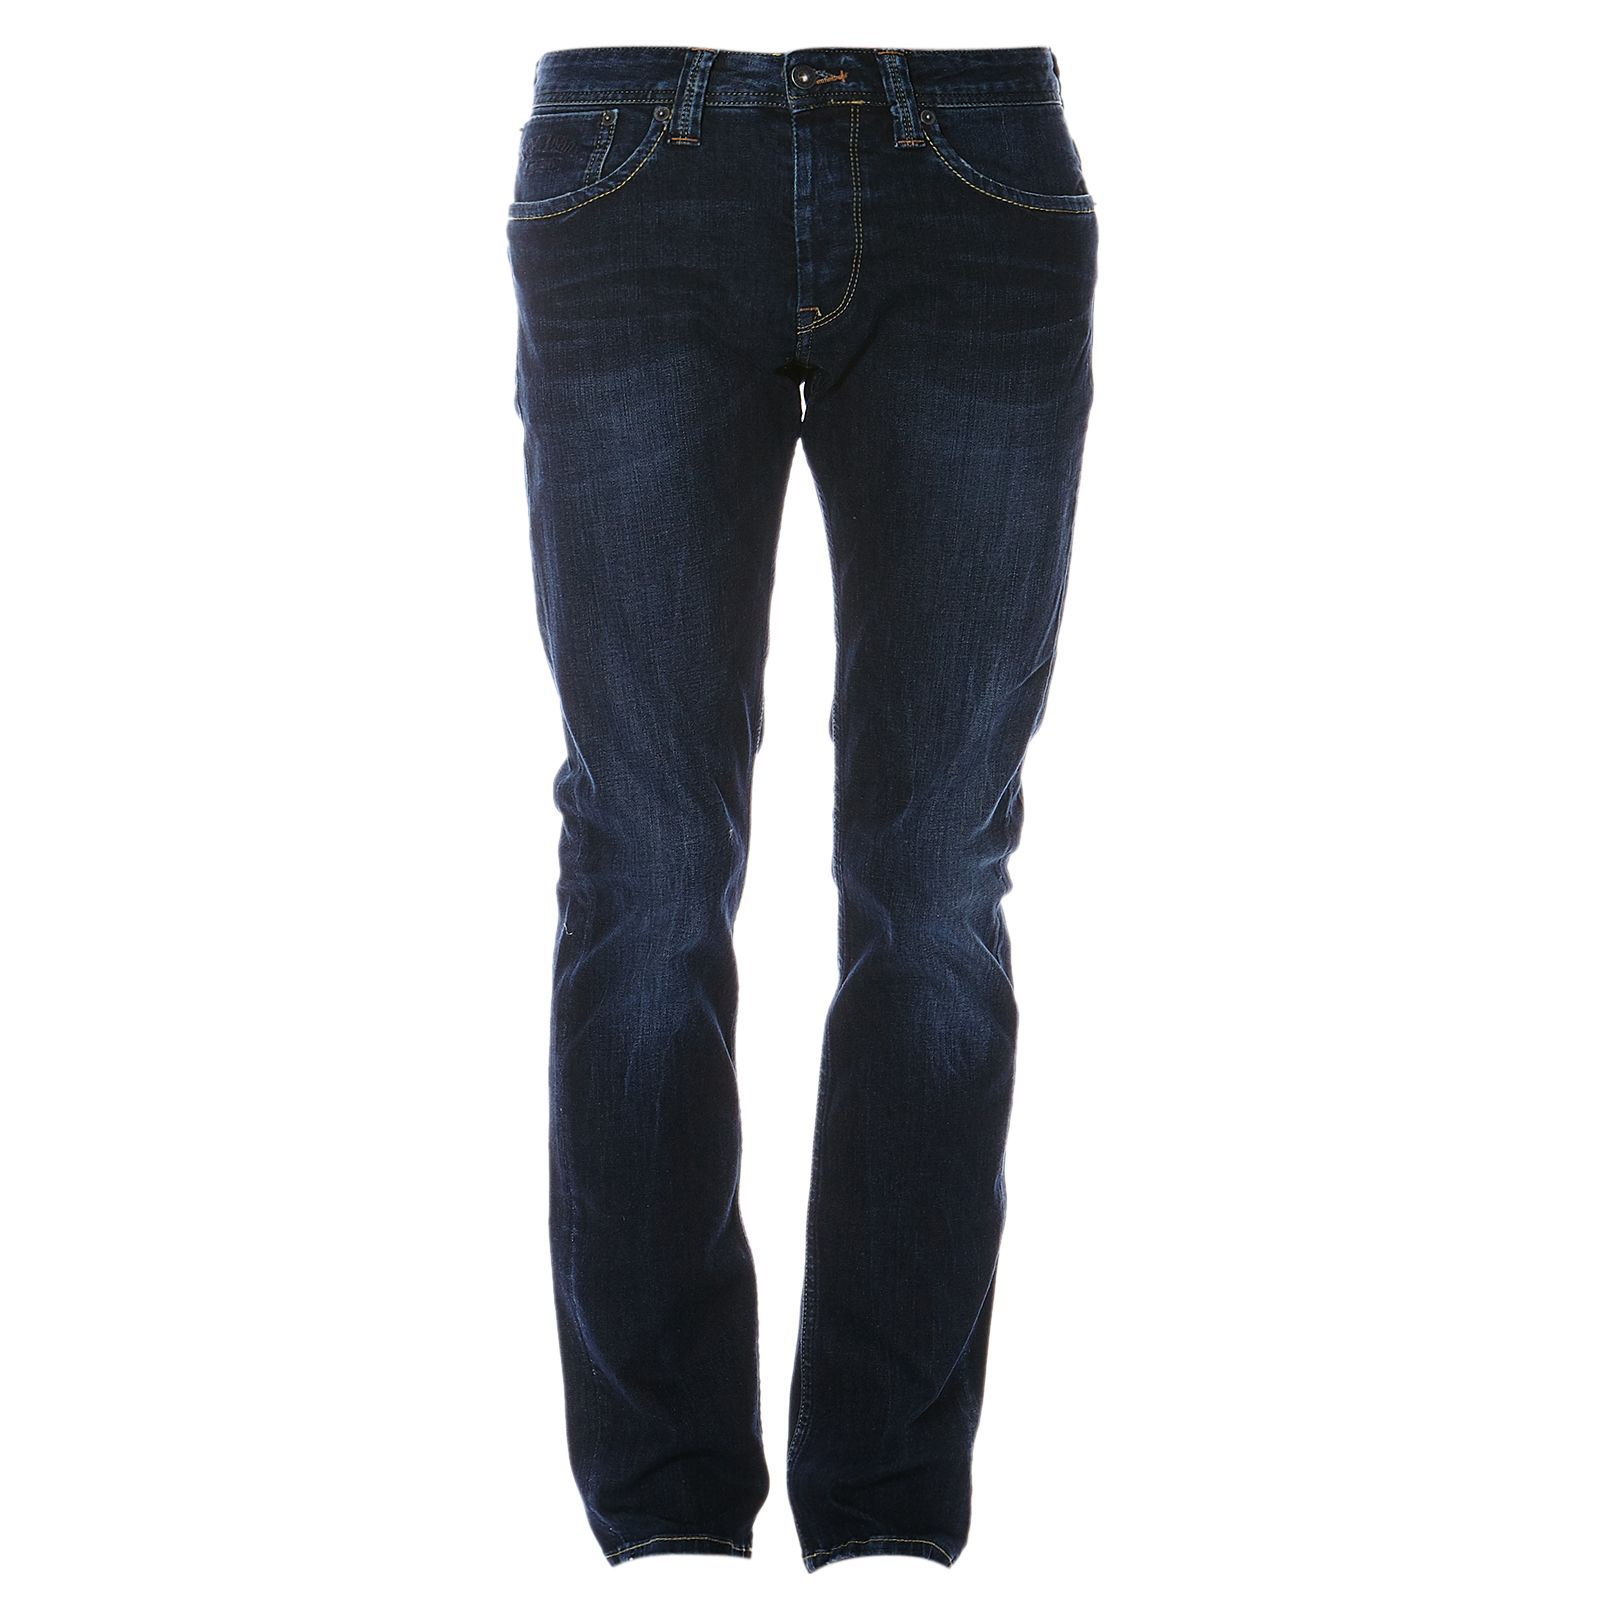 Pepe Jeans London Cash - Jean droit - denim bleu